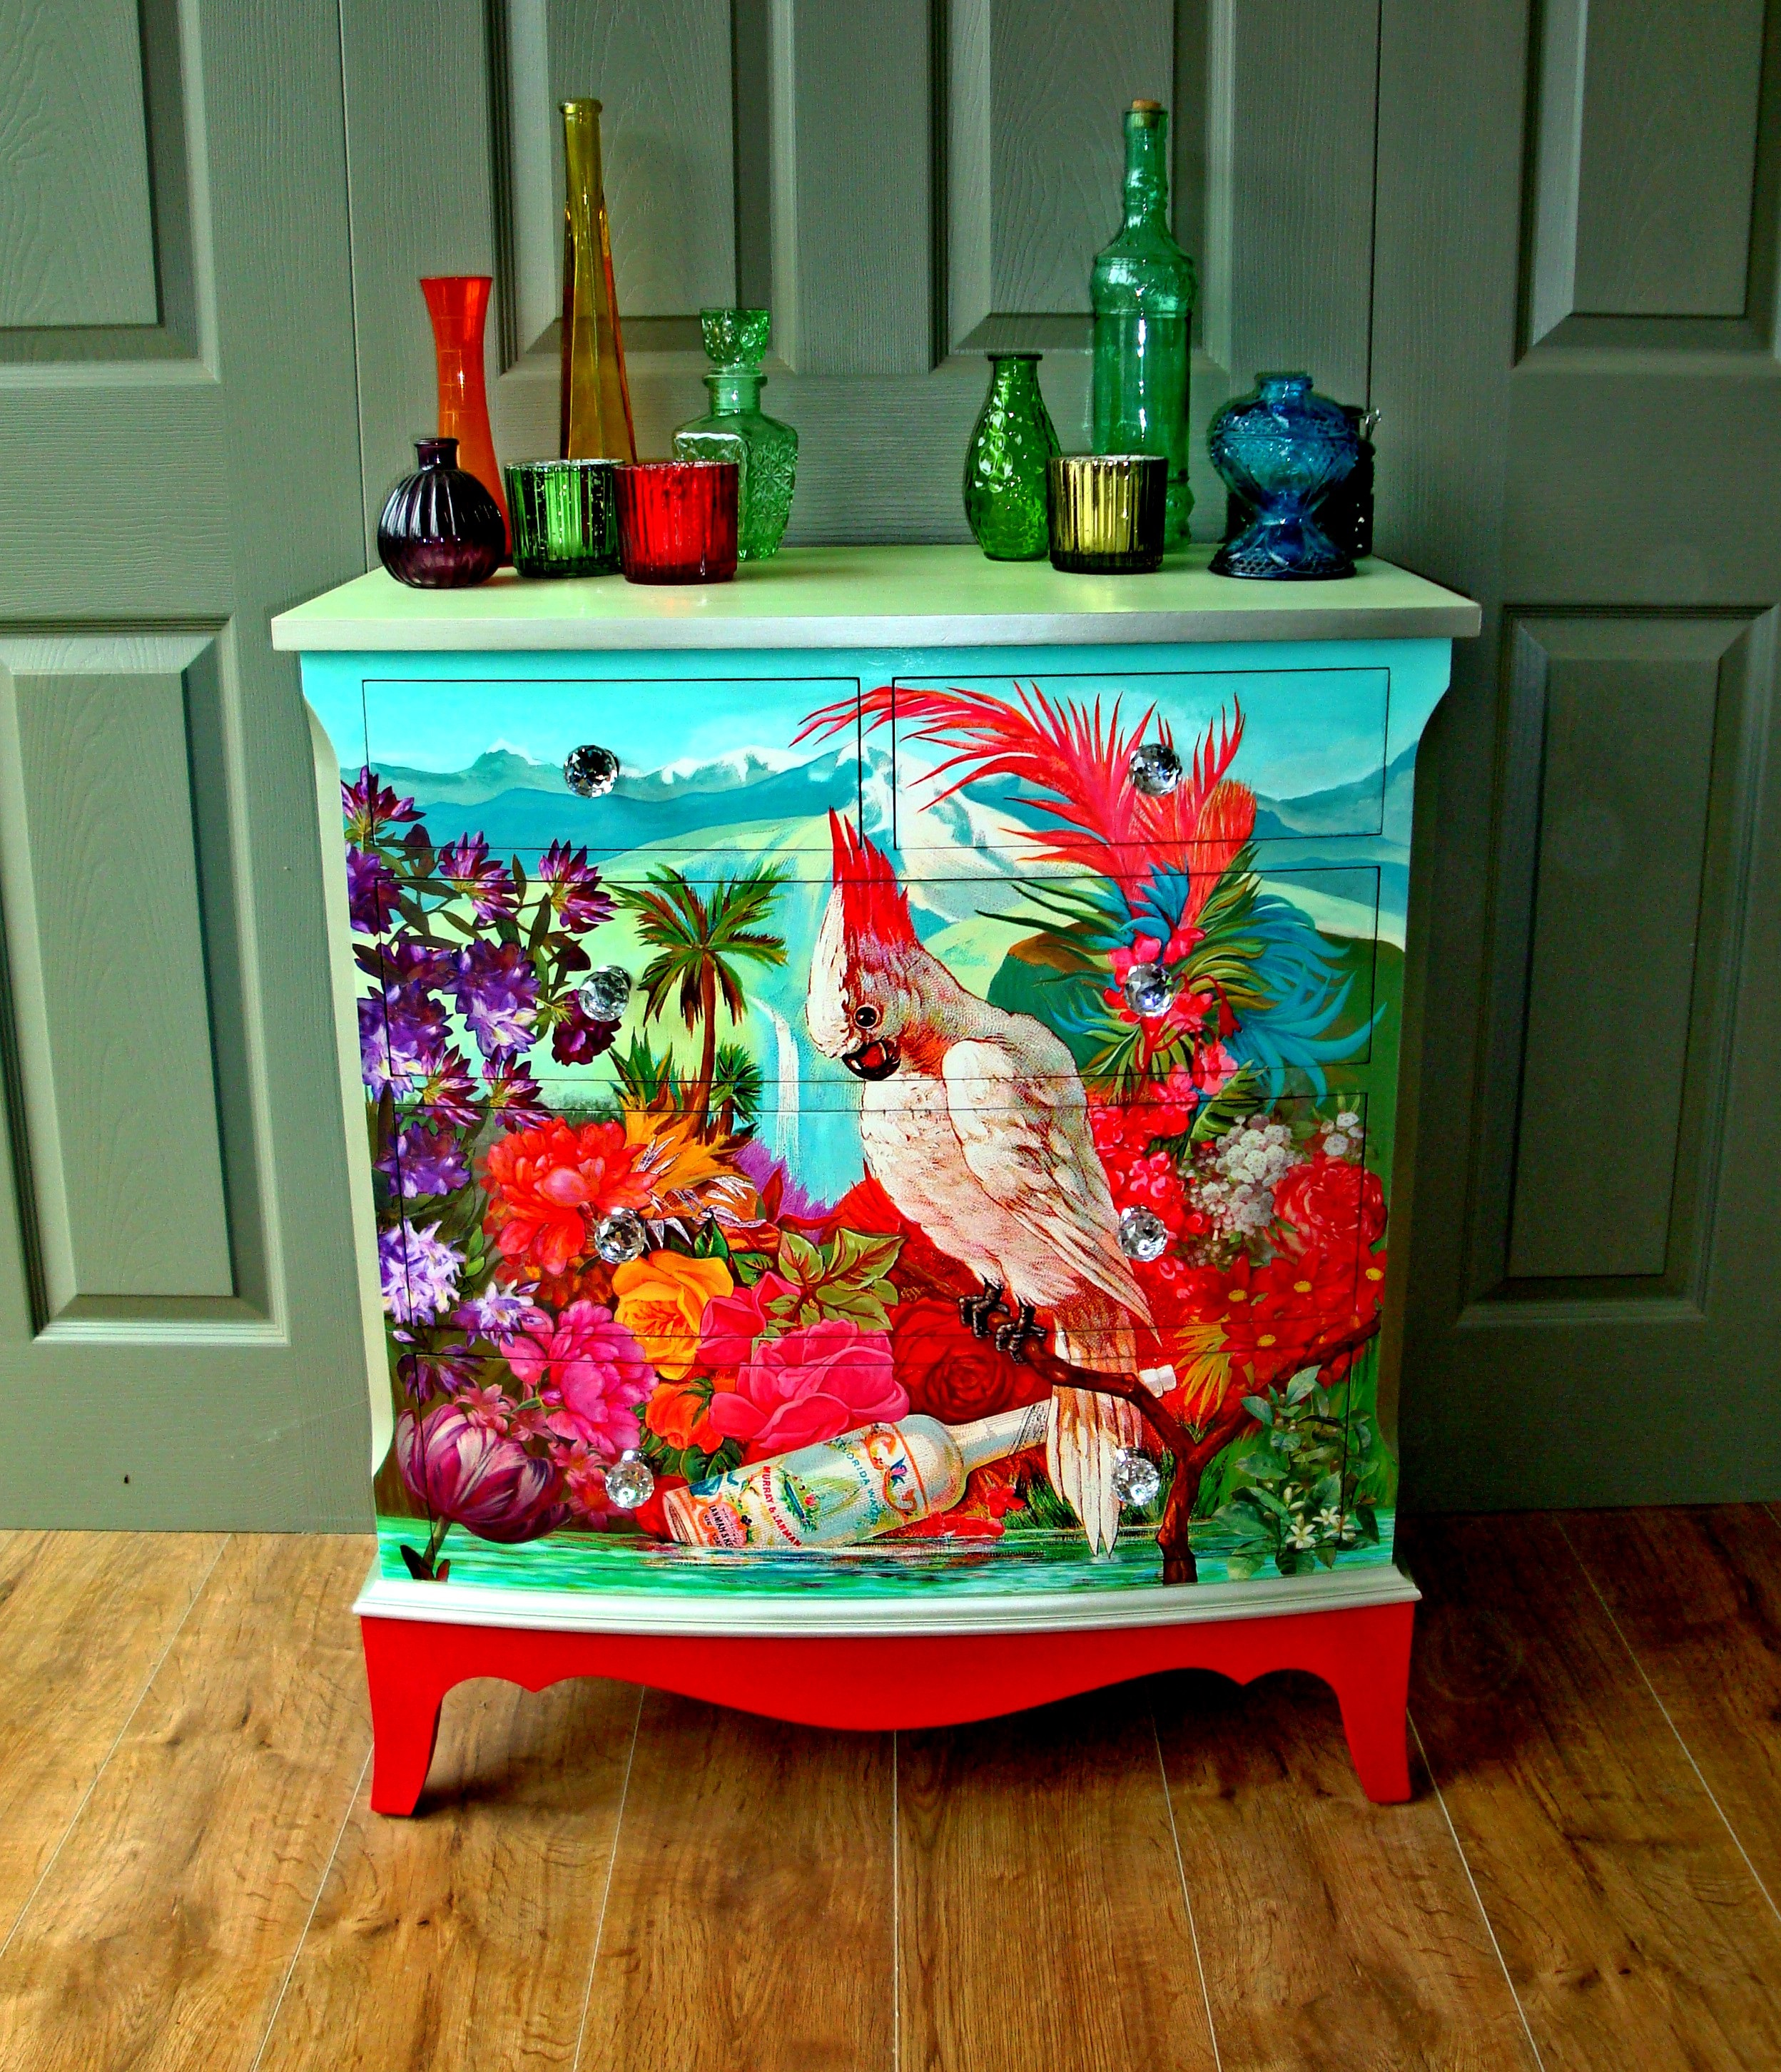 The House of Upcycling: Siren Designs Upcycled Chest of Drawers with Cockatoo Decoupage